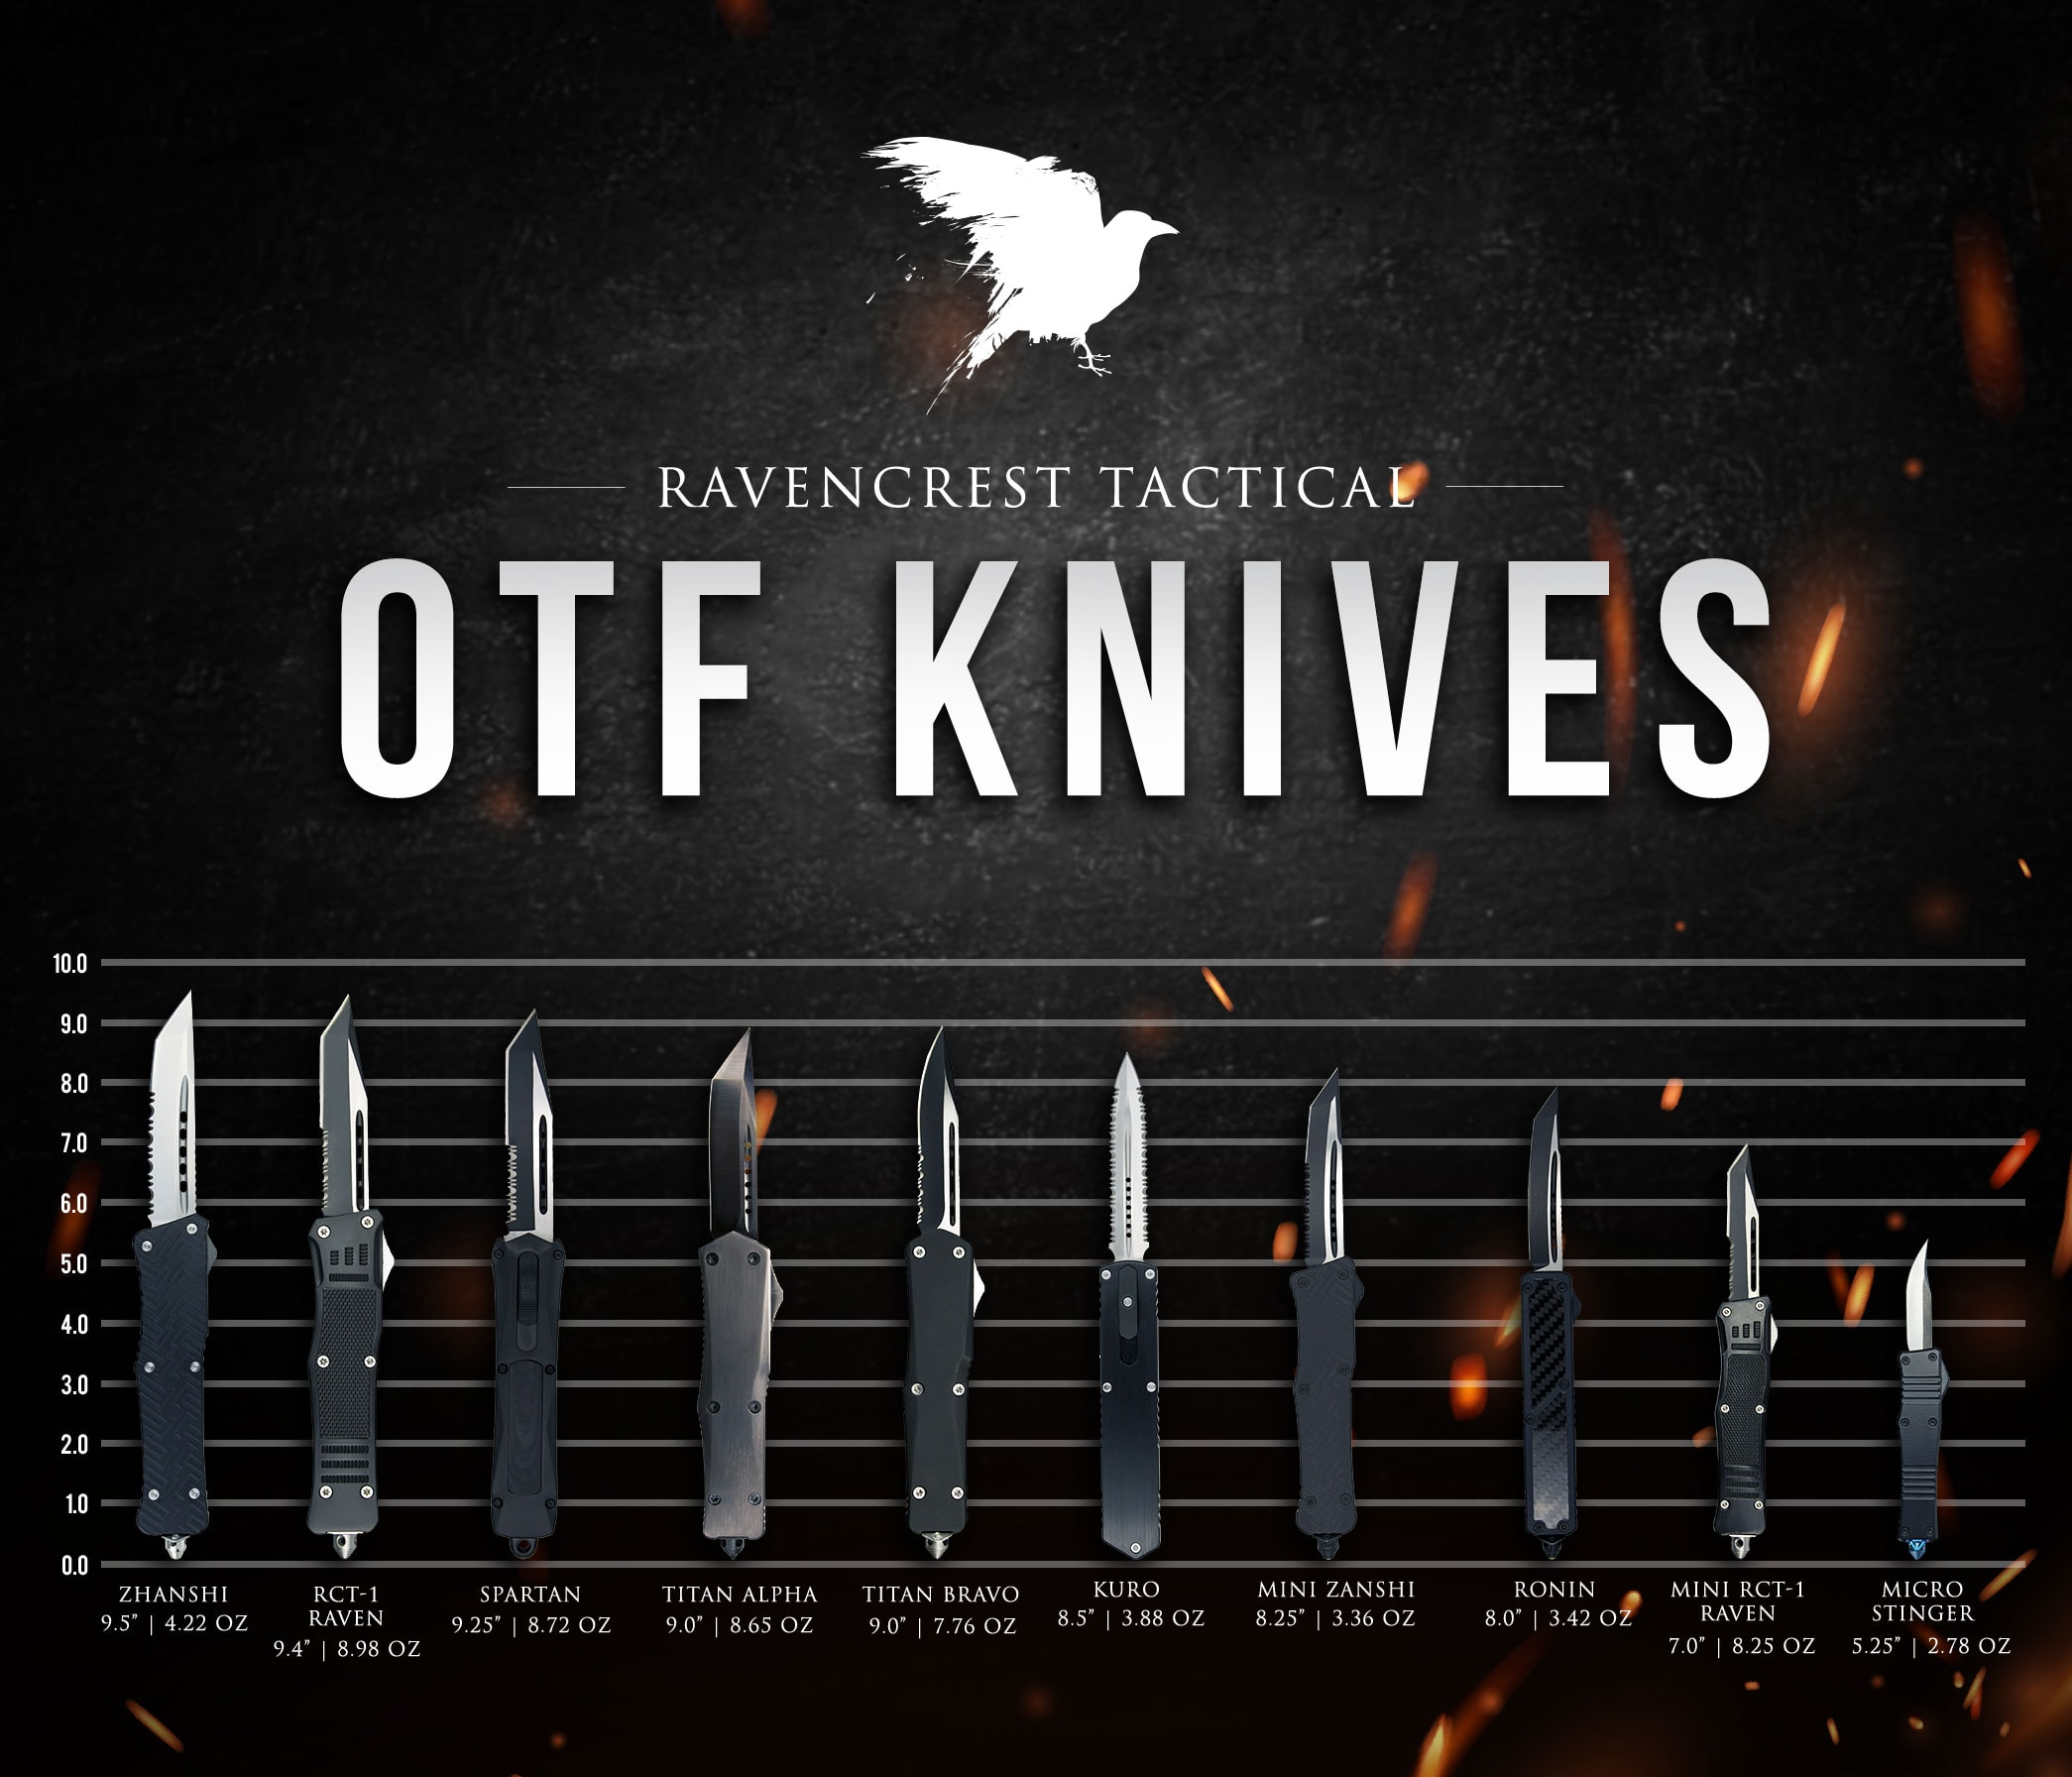 RavenCrest Tactical OTF Knives Comparison Chart